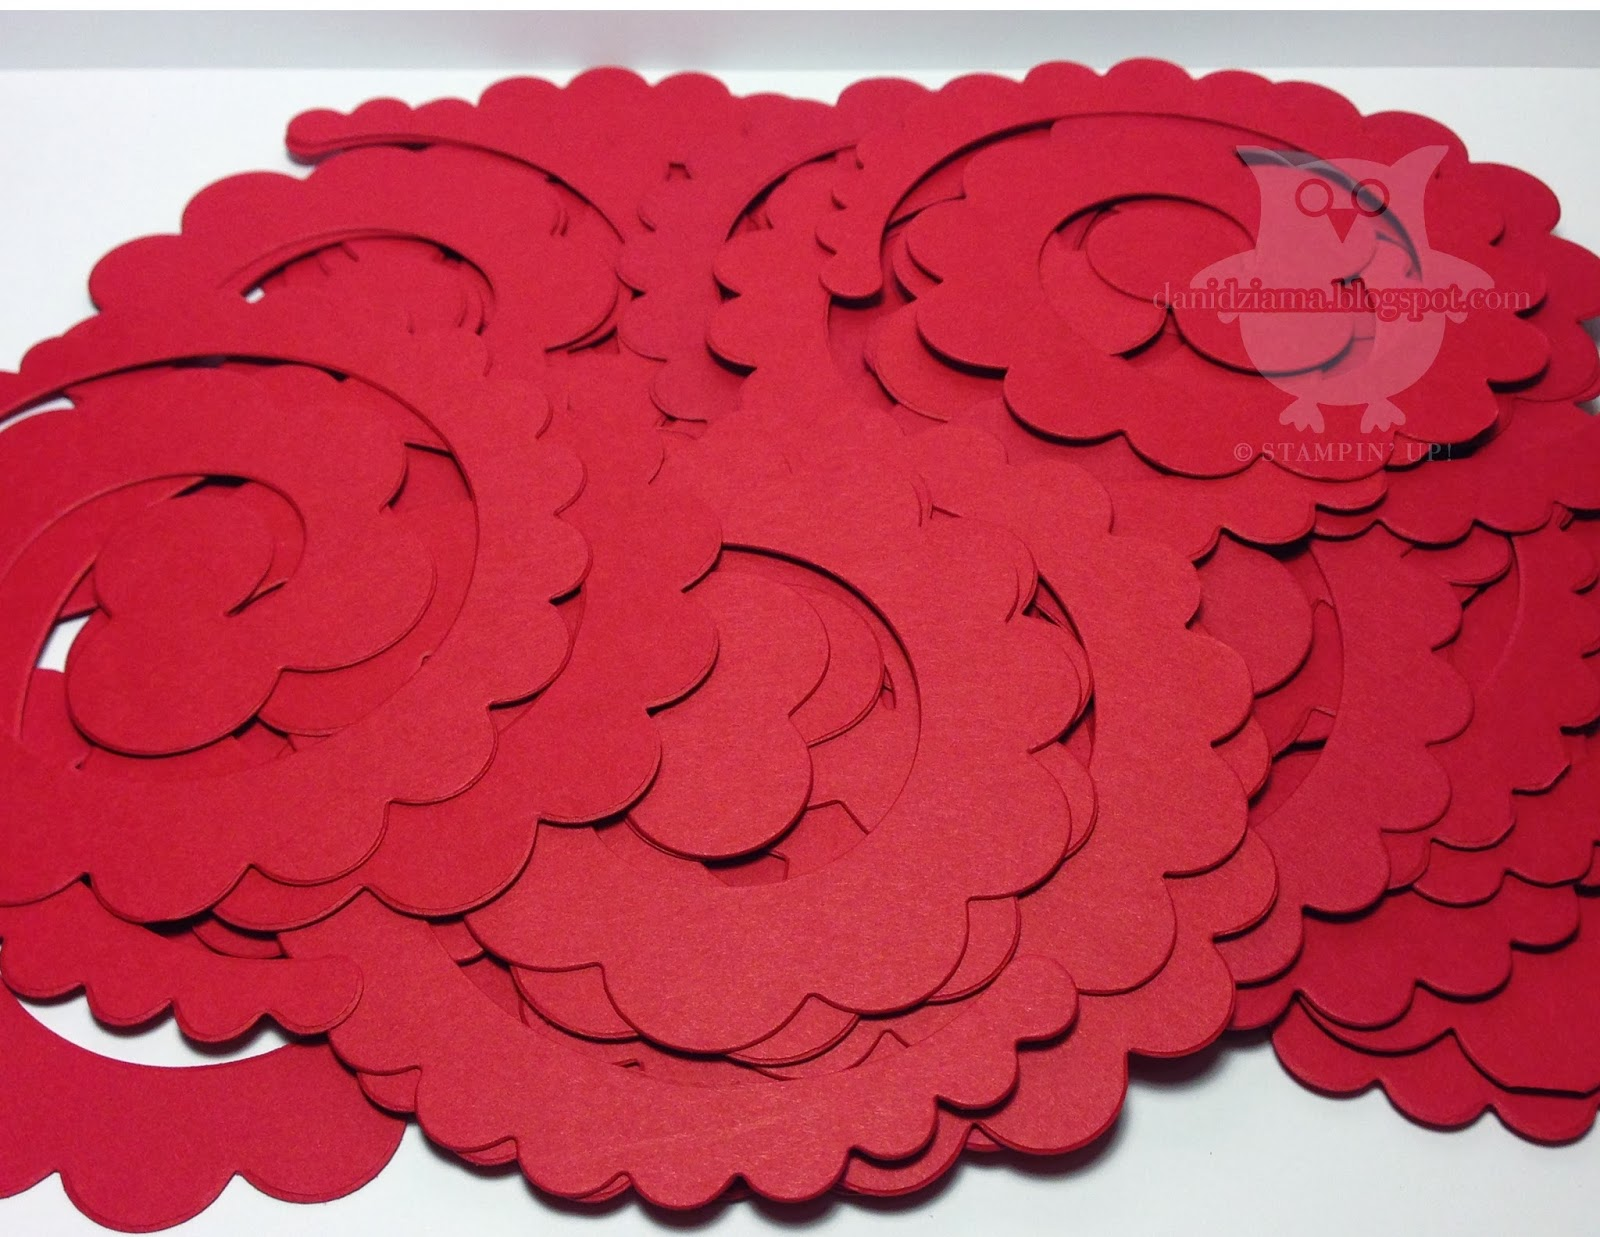 Made In Craftadise | Top Art & Crafts, Home Decor blog in ... |Rose Cut Out